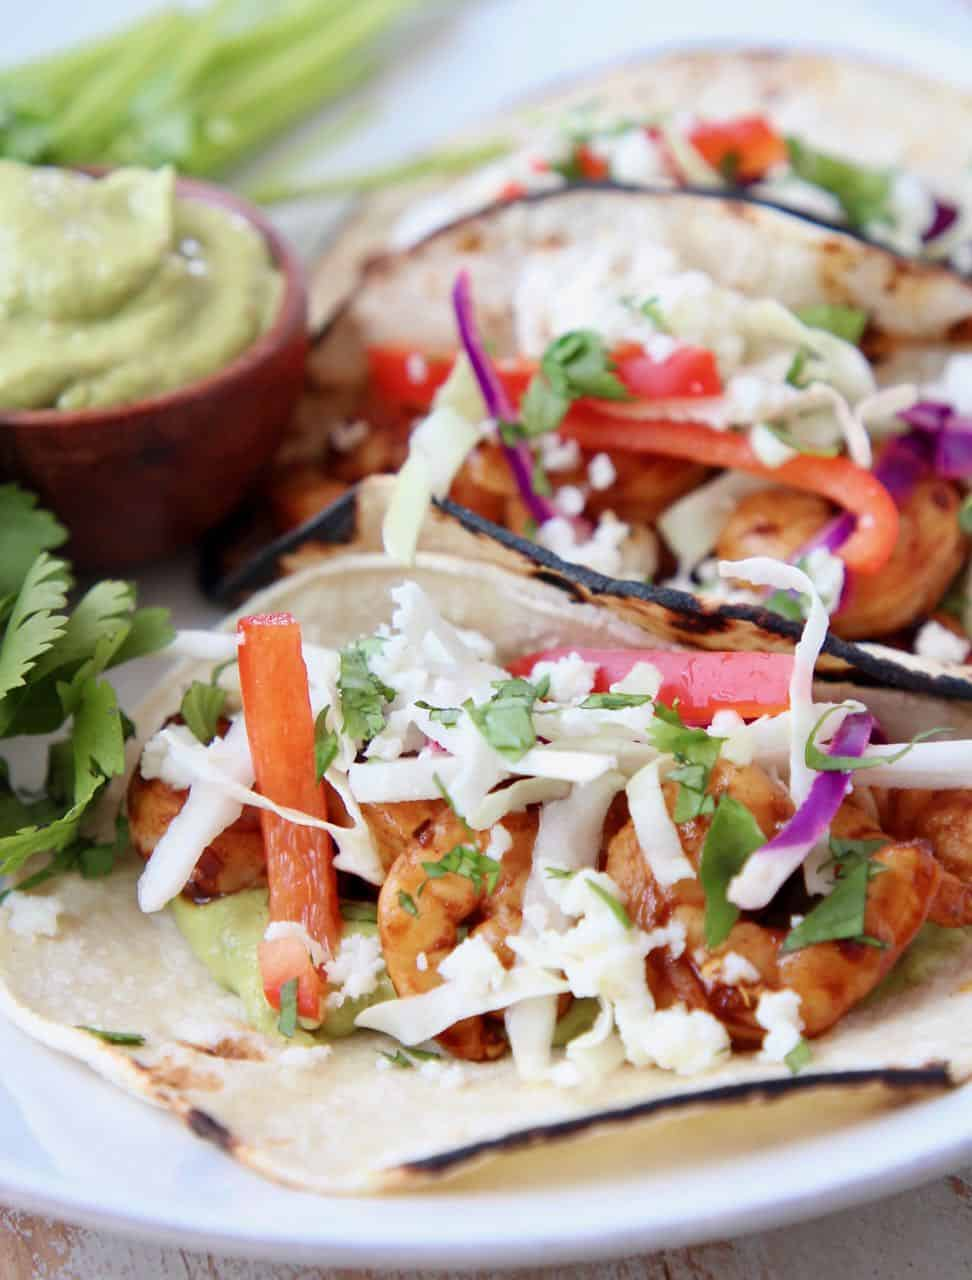 Tacos filled with shrimp, slaw and avocado salsa on white plate with fresh cilantro